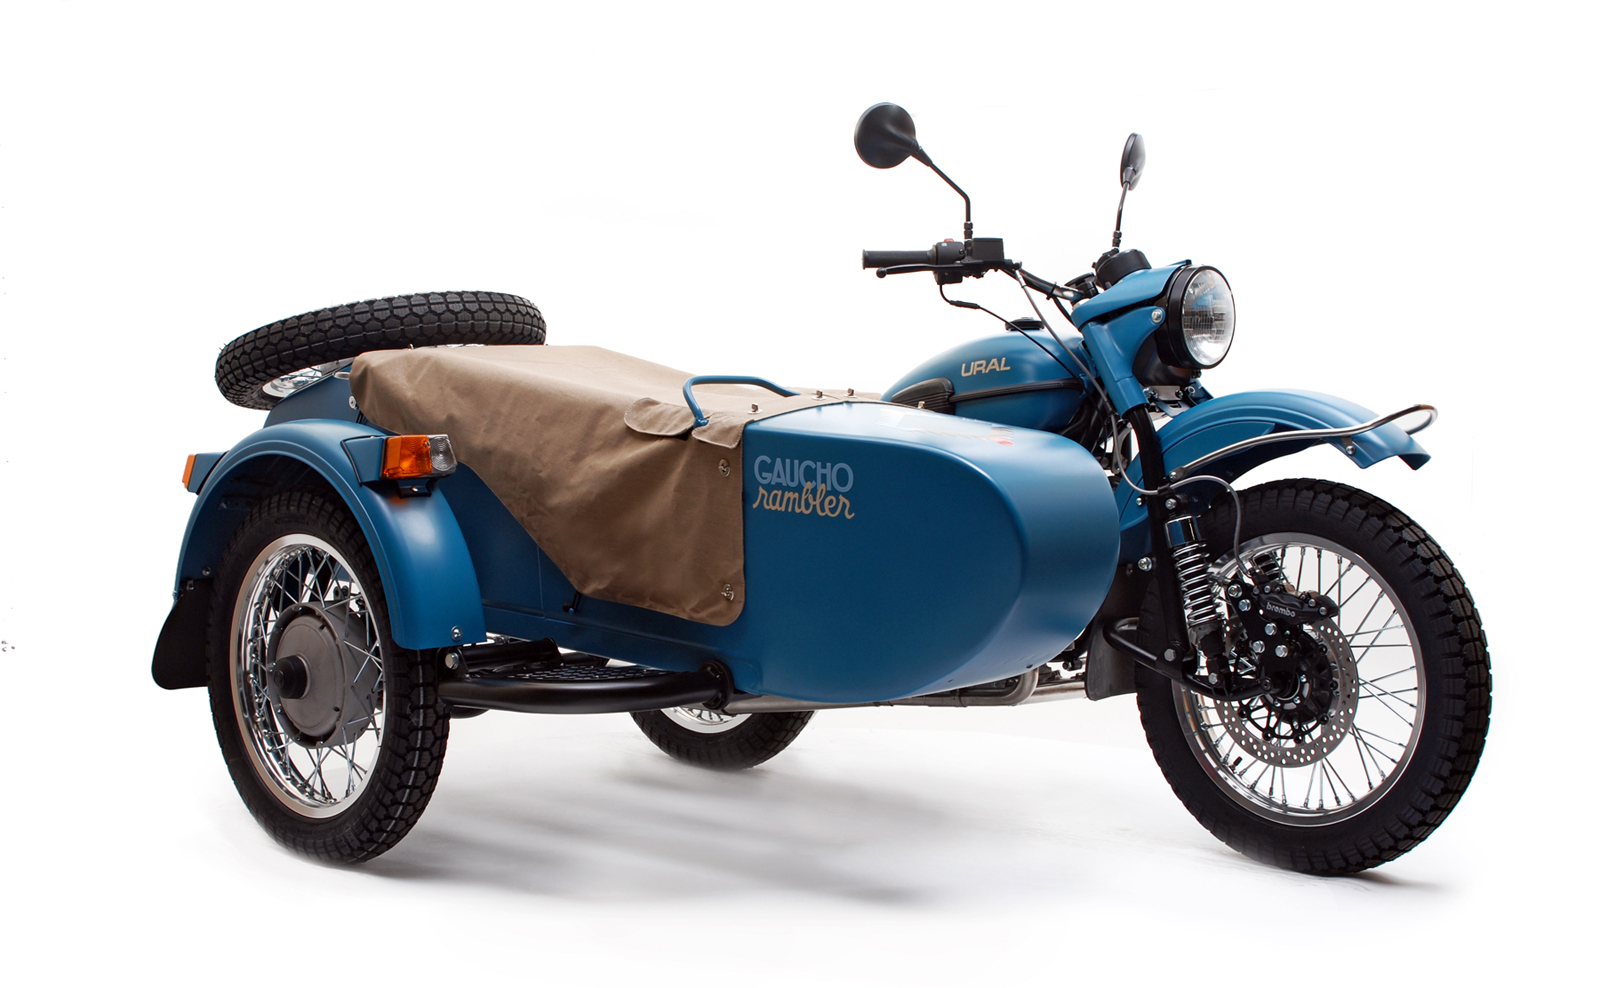 2013 ural gaucho rambler limited edition price annouced only 50 rh autoevolution com Ural 750 Engine Ural Engine Plug